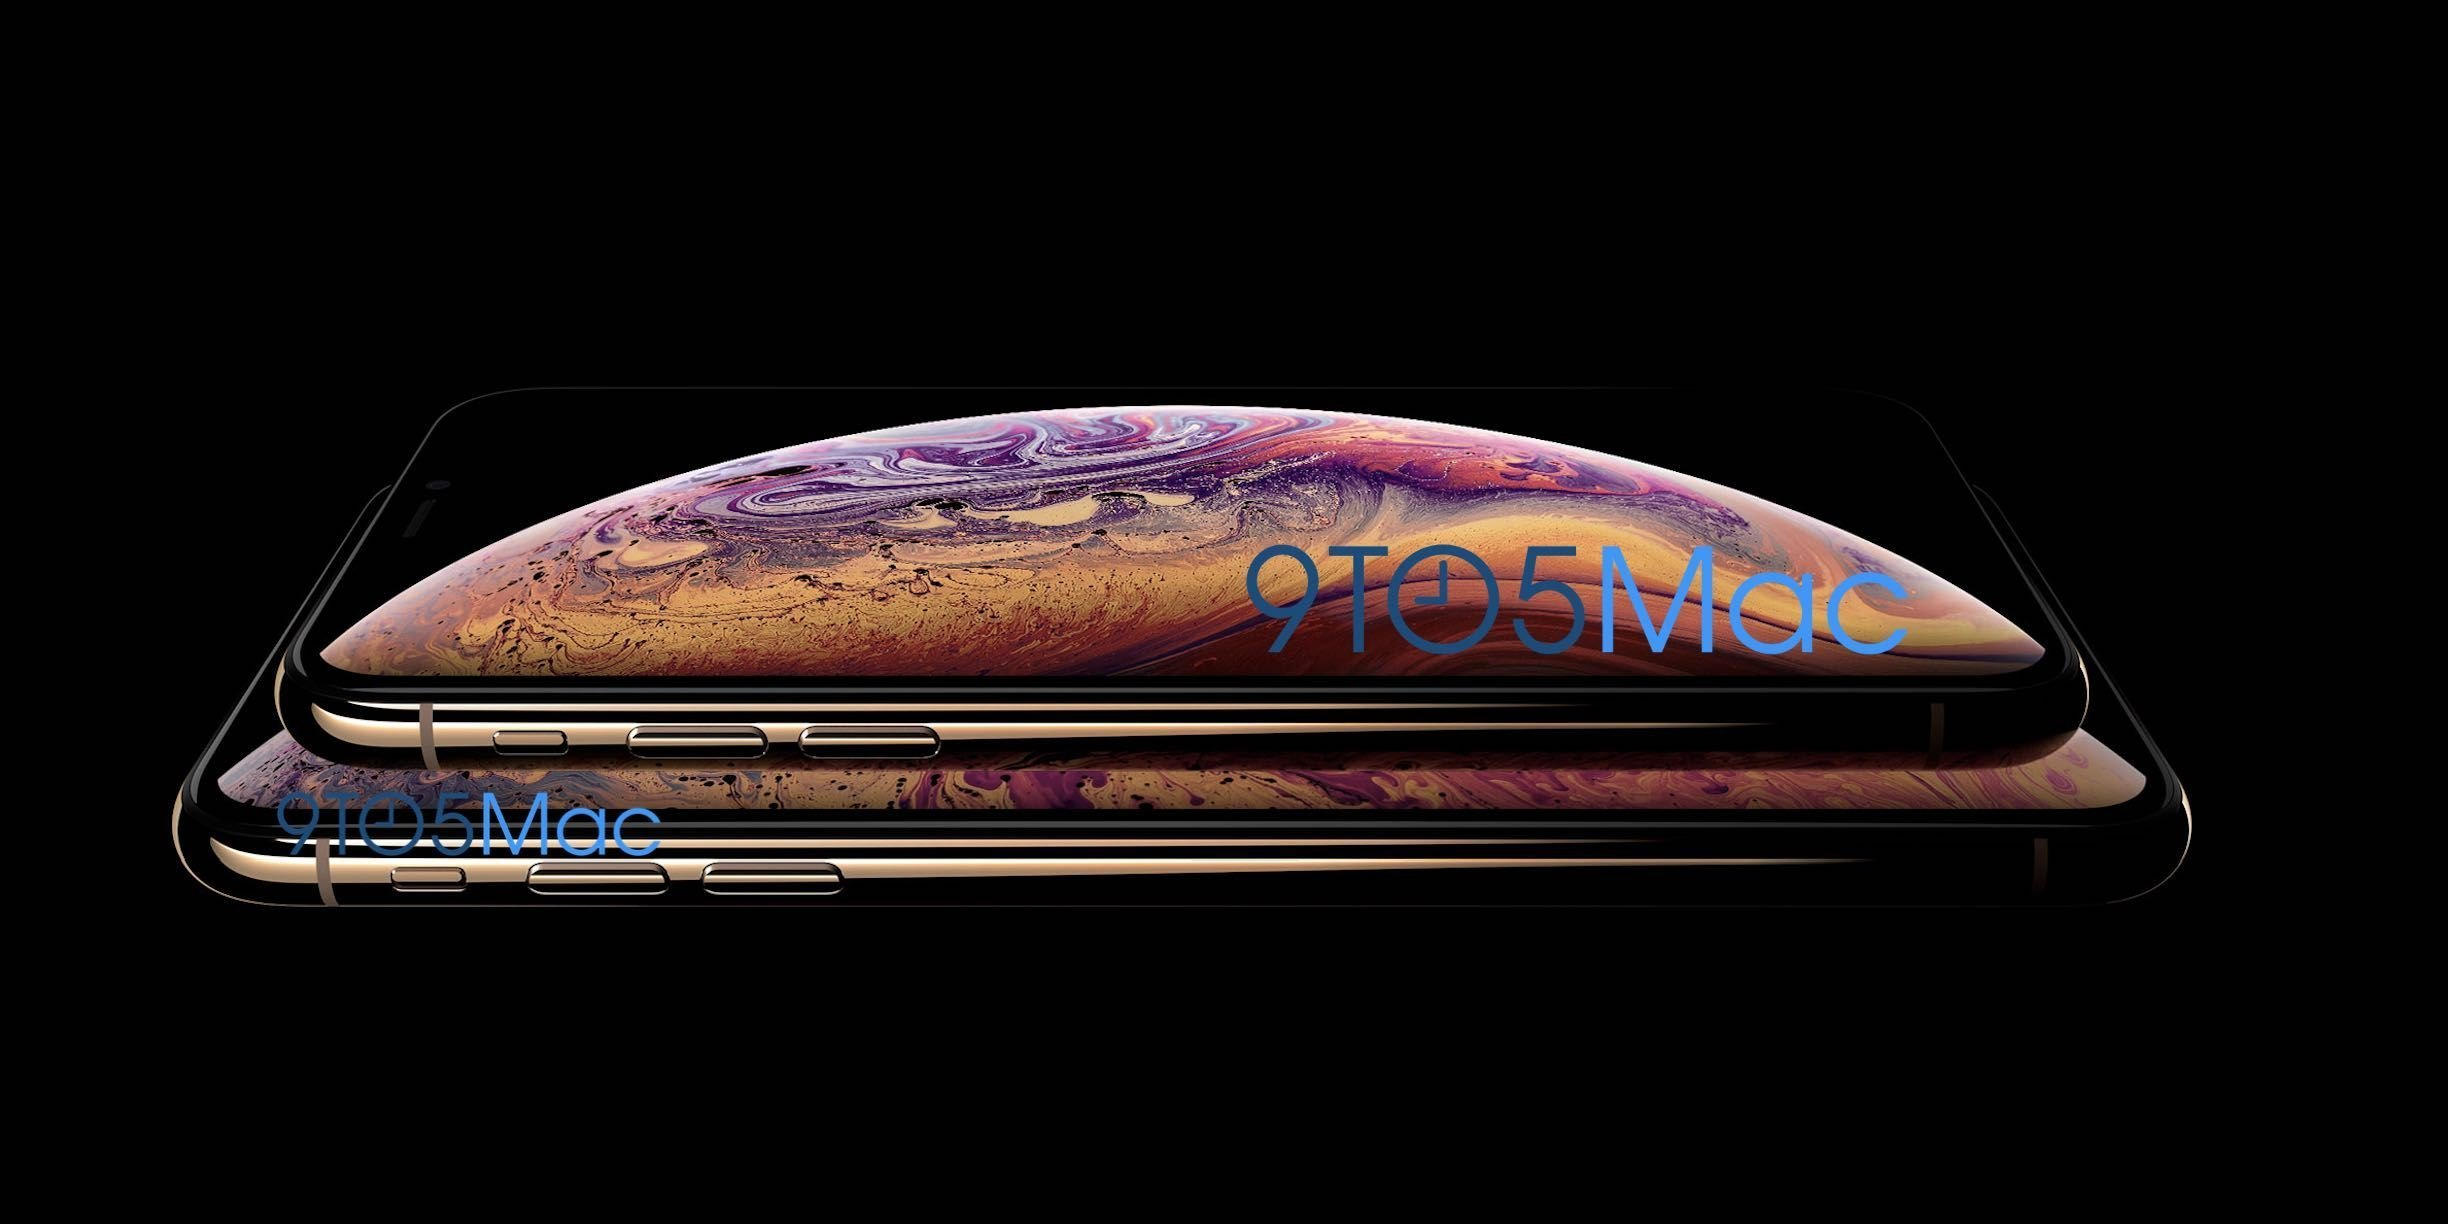 iPhone XS / 9to5Mac